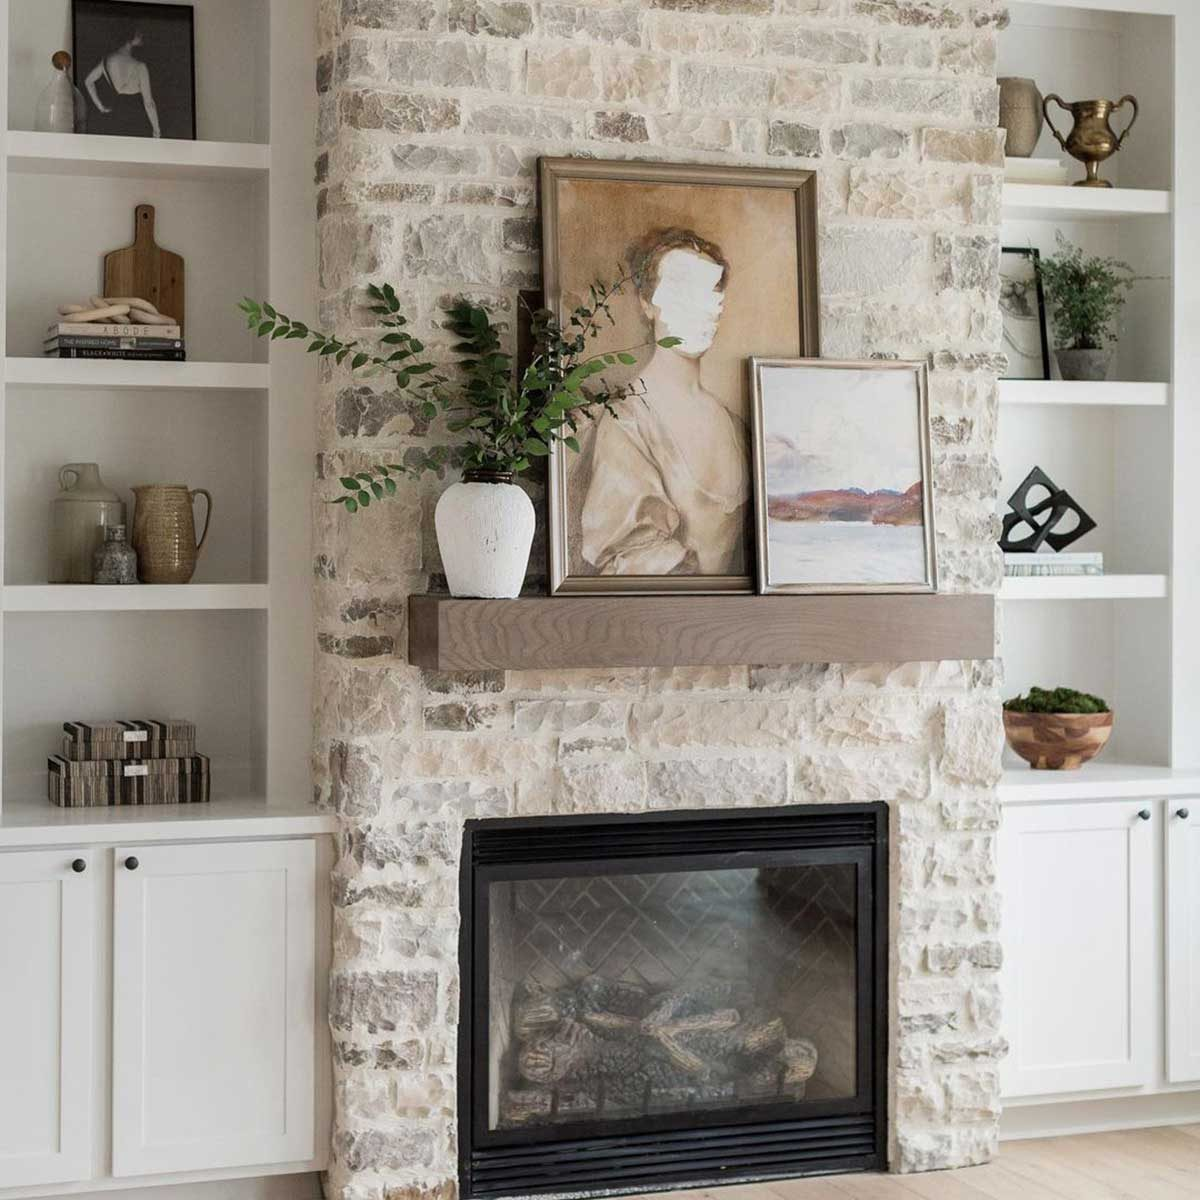 Fireplace Decor 135031711 684650538909972 1033742448850662650 N